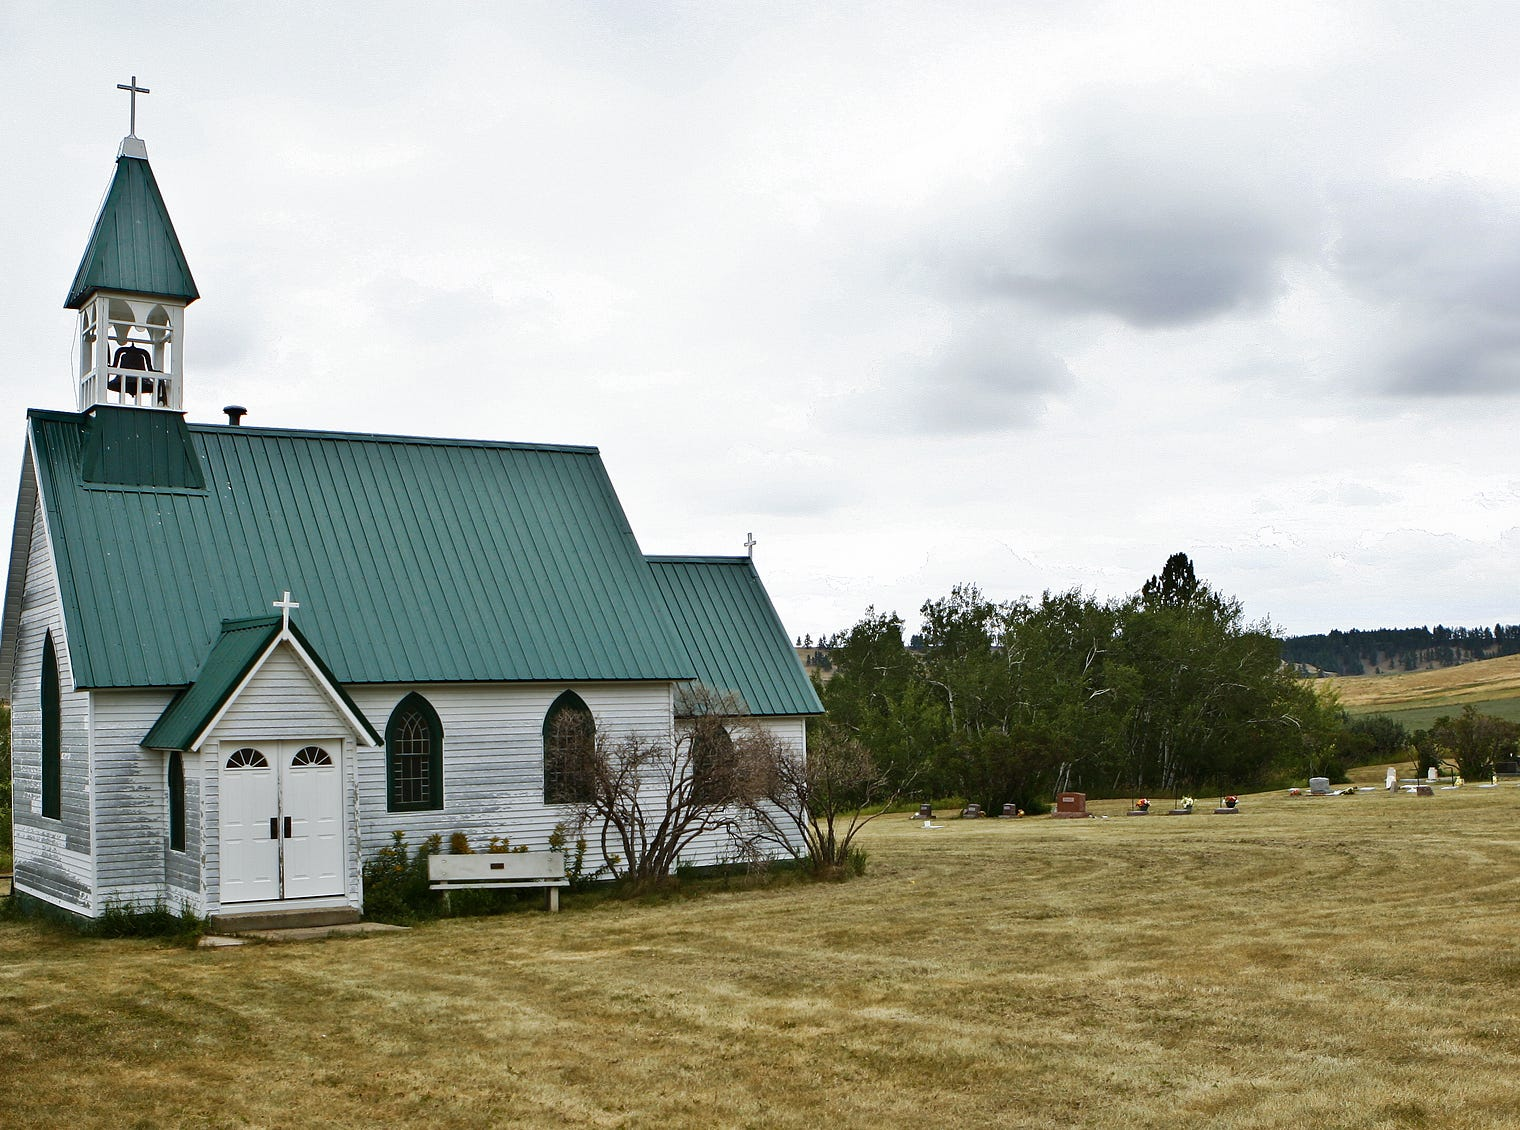 The church in Forest Grove originally was built in 1907 as an Episcopal church. It's now community owned, and services are held twice a month during the summer as well as on Christmas and Easter.